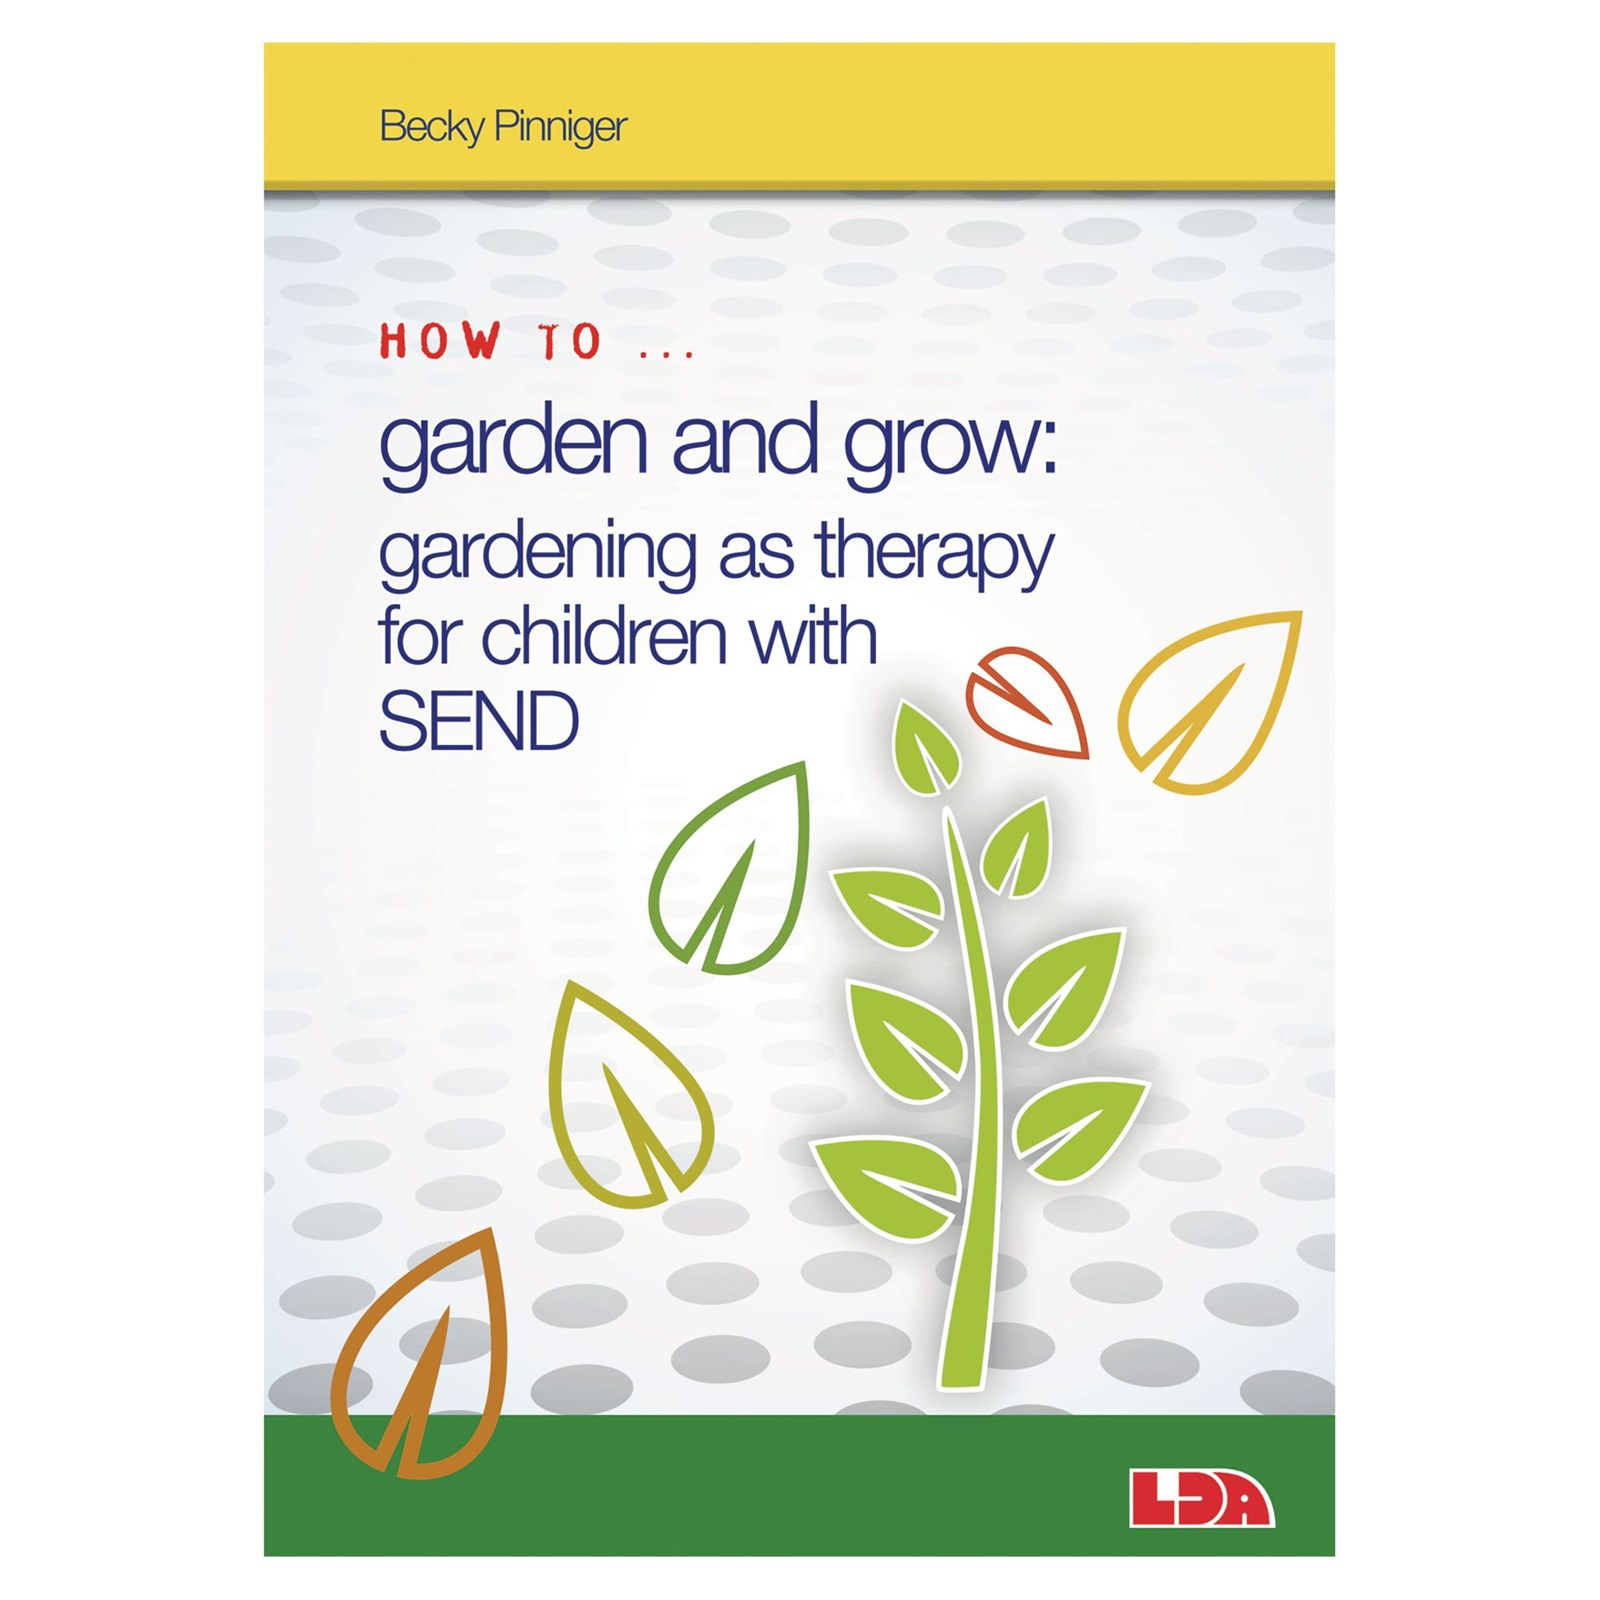 How to Garden and Grow with Children with SEND